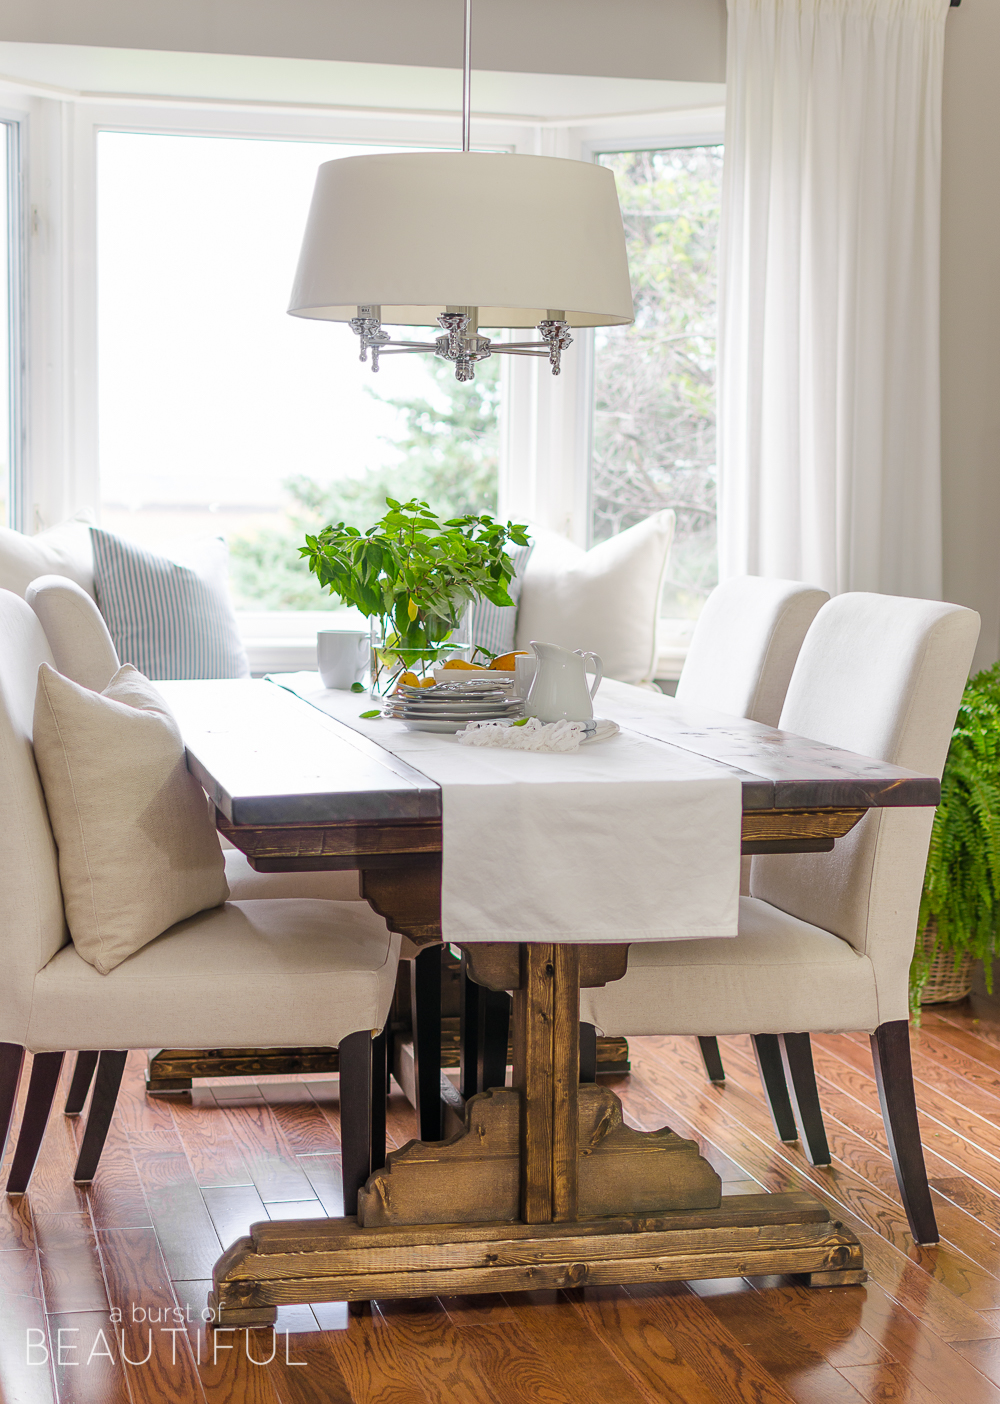 Take a look back at our Top Ten Posts of 2016: DIY Farmhouse Dining Table Plans